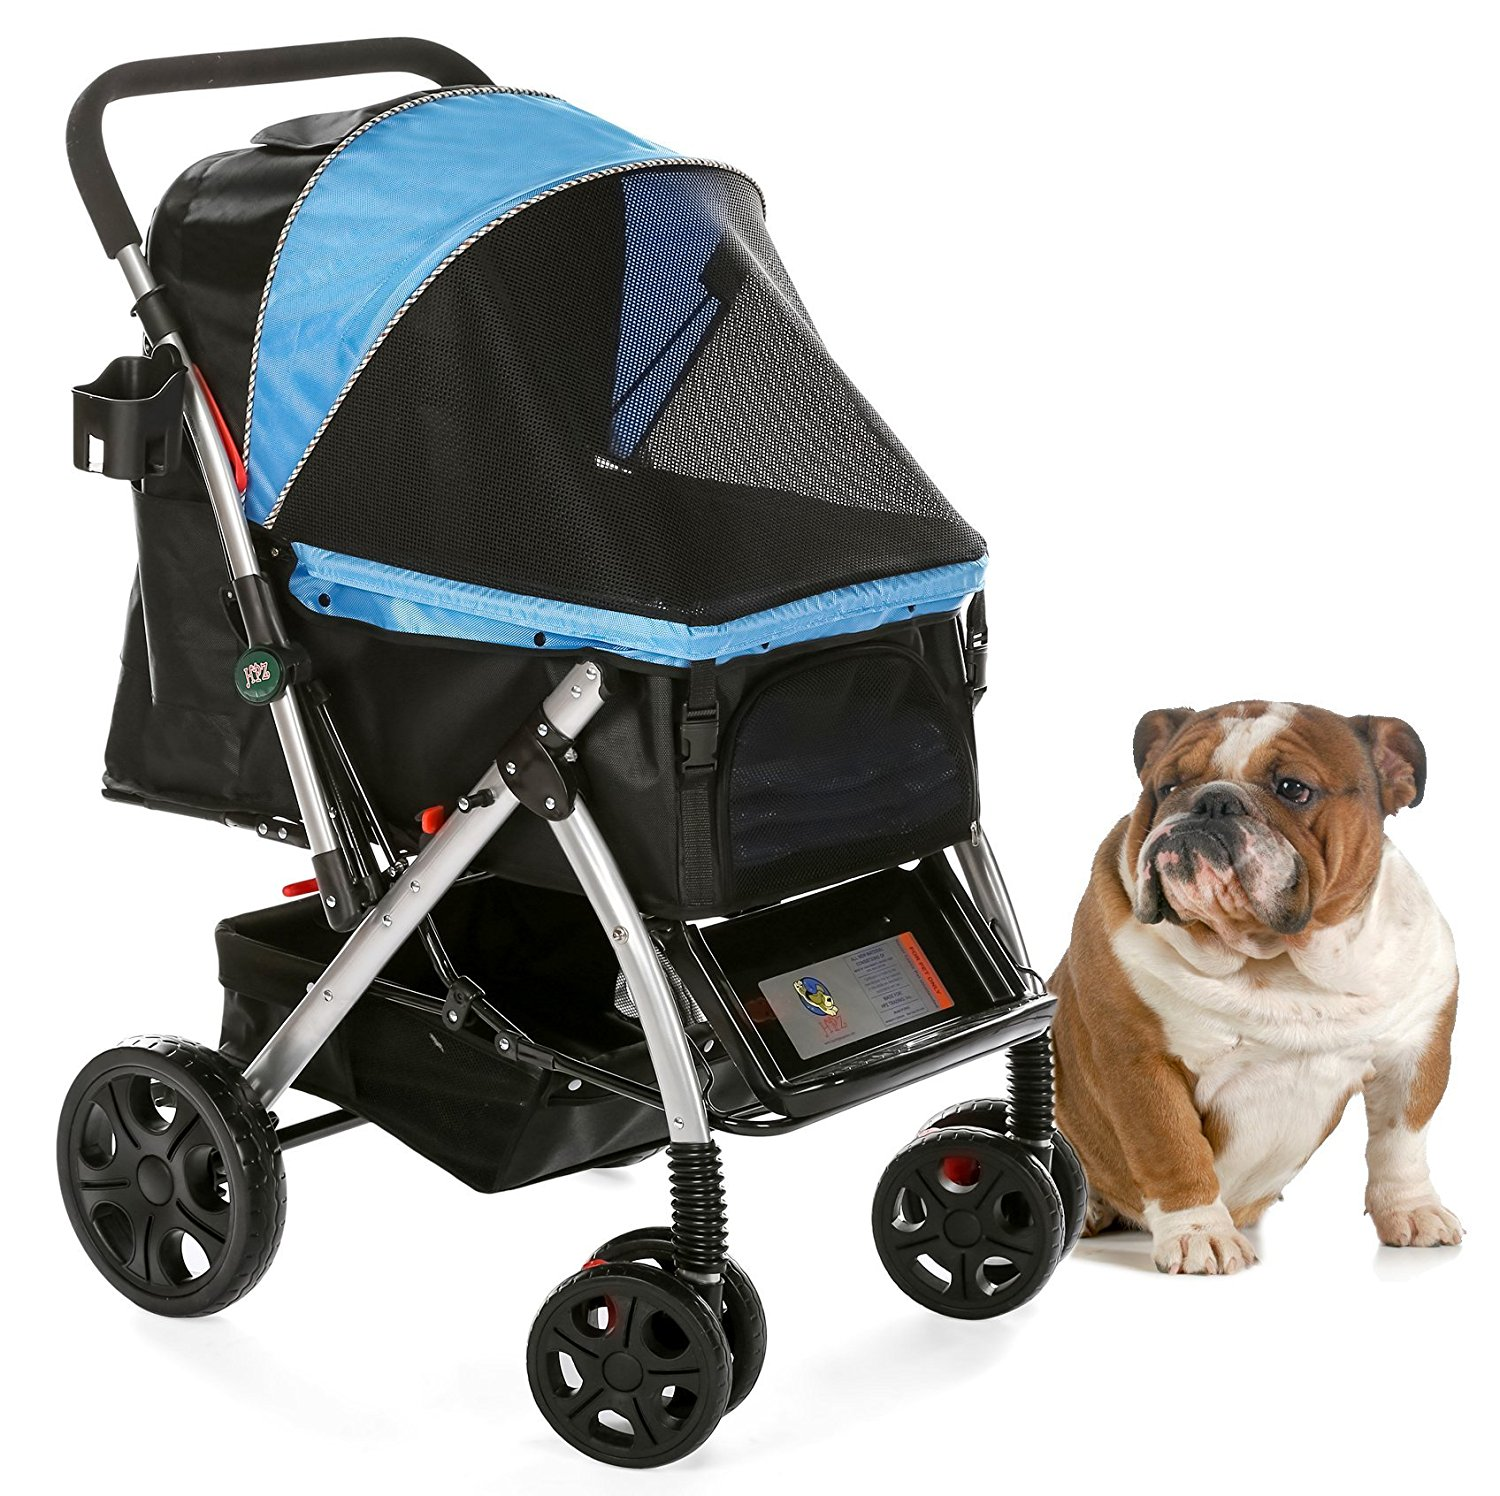 Where Can I Find A Dog Stroller